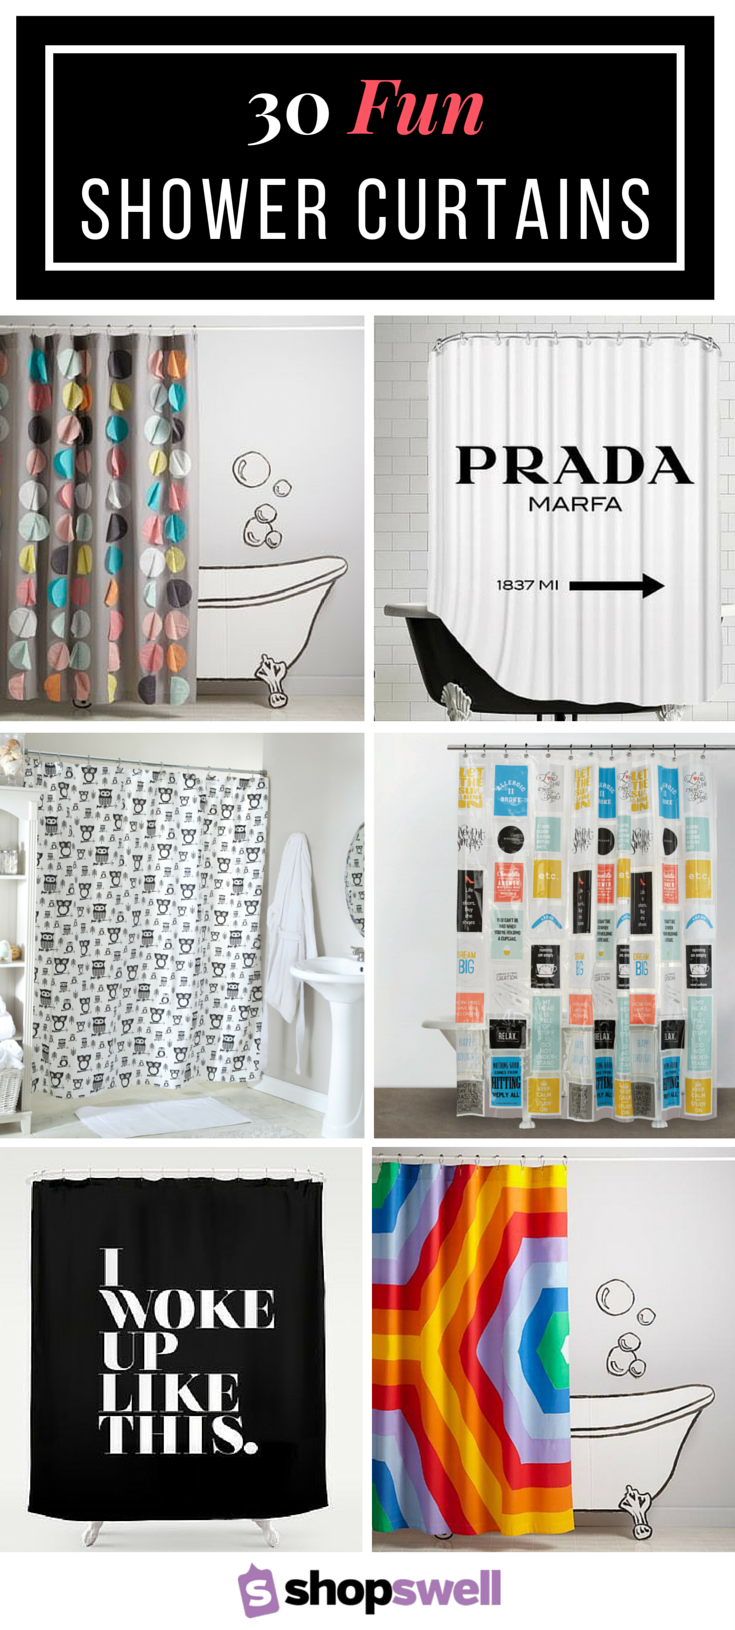 Put Some Personality In Your Bathroom To Liven Up Morning Routine With One Of These 30 Funky Shower Curtains